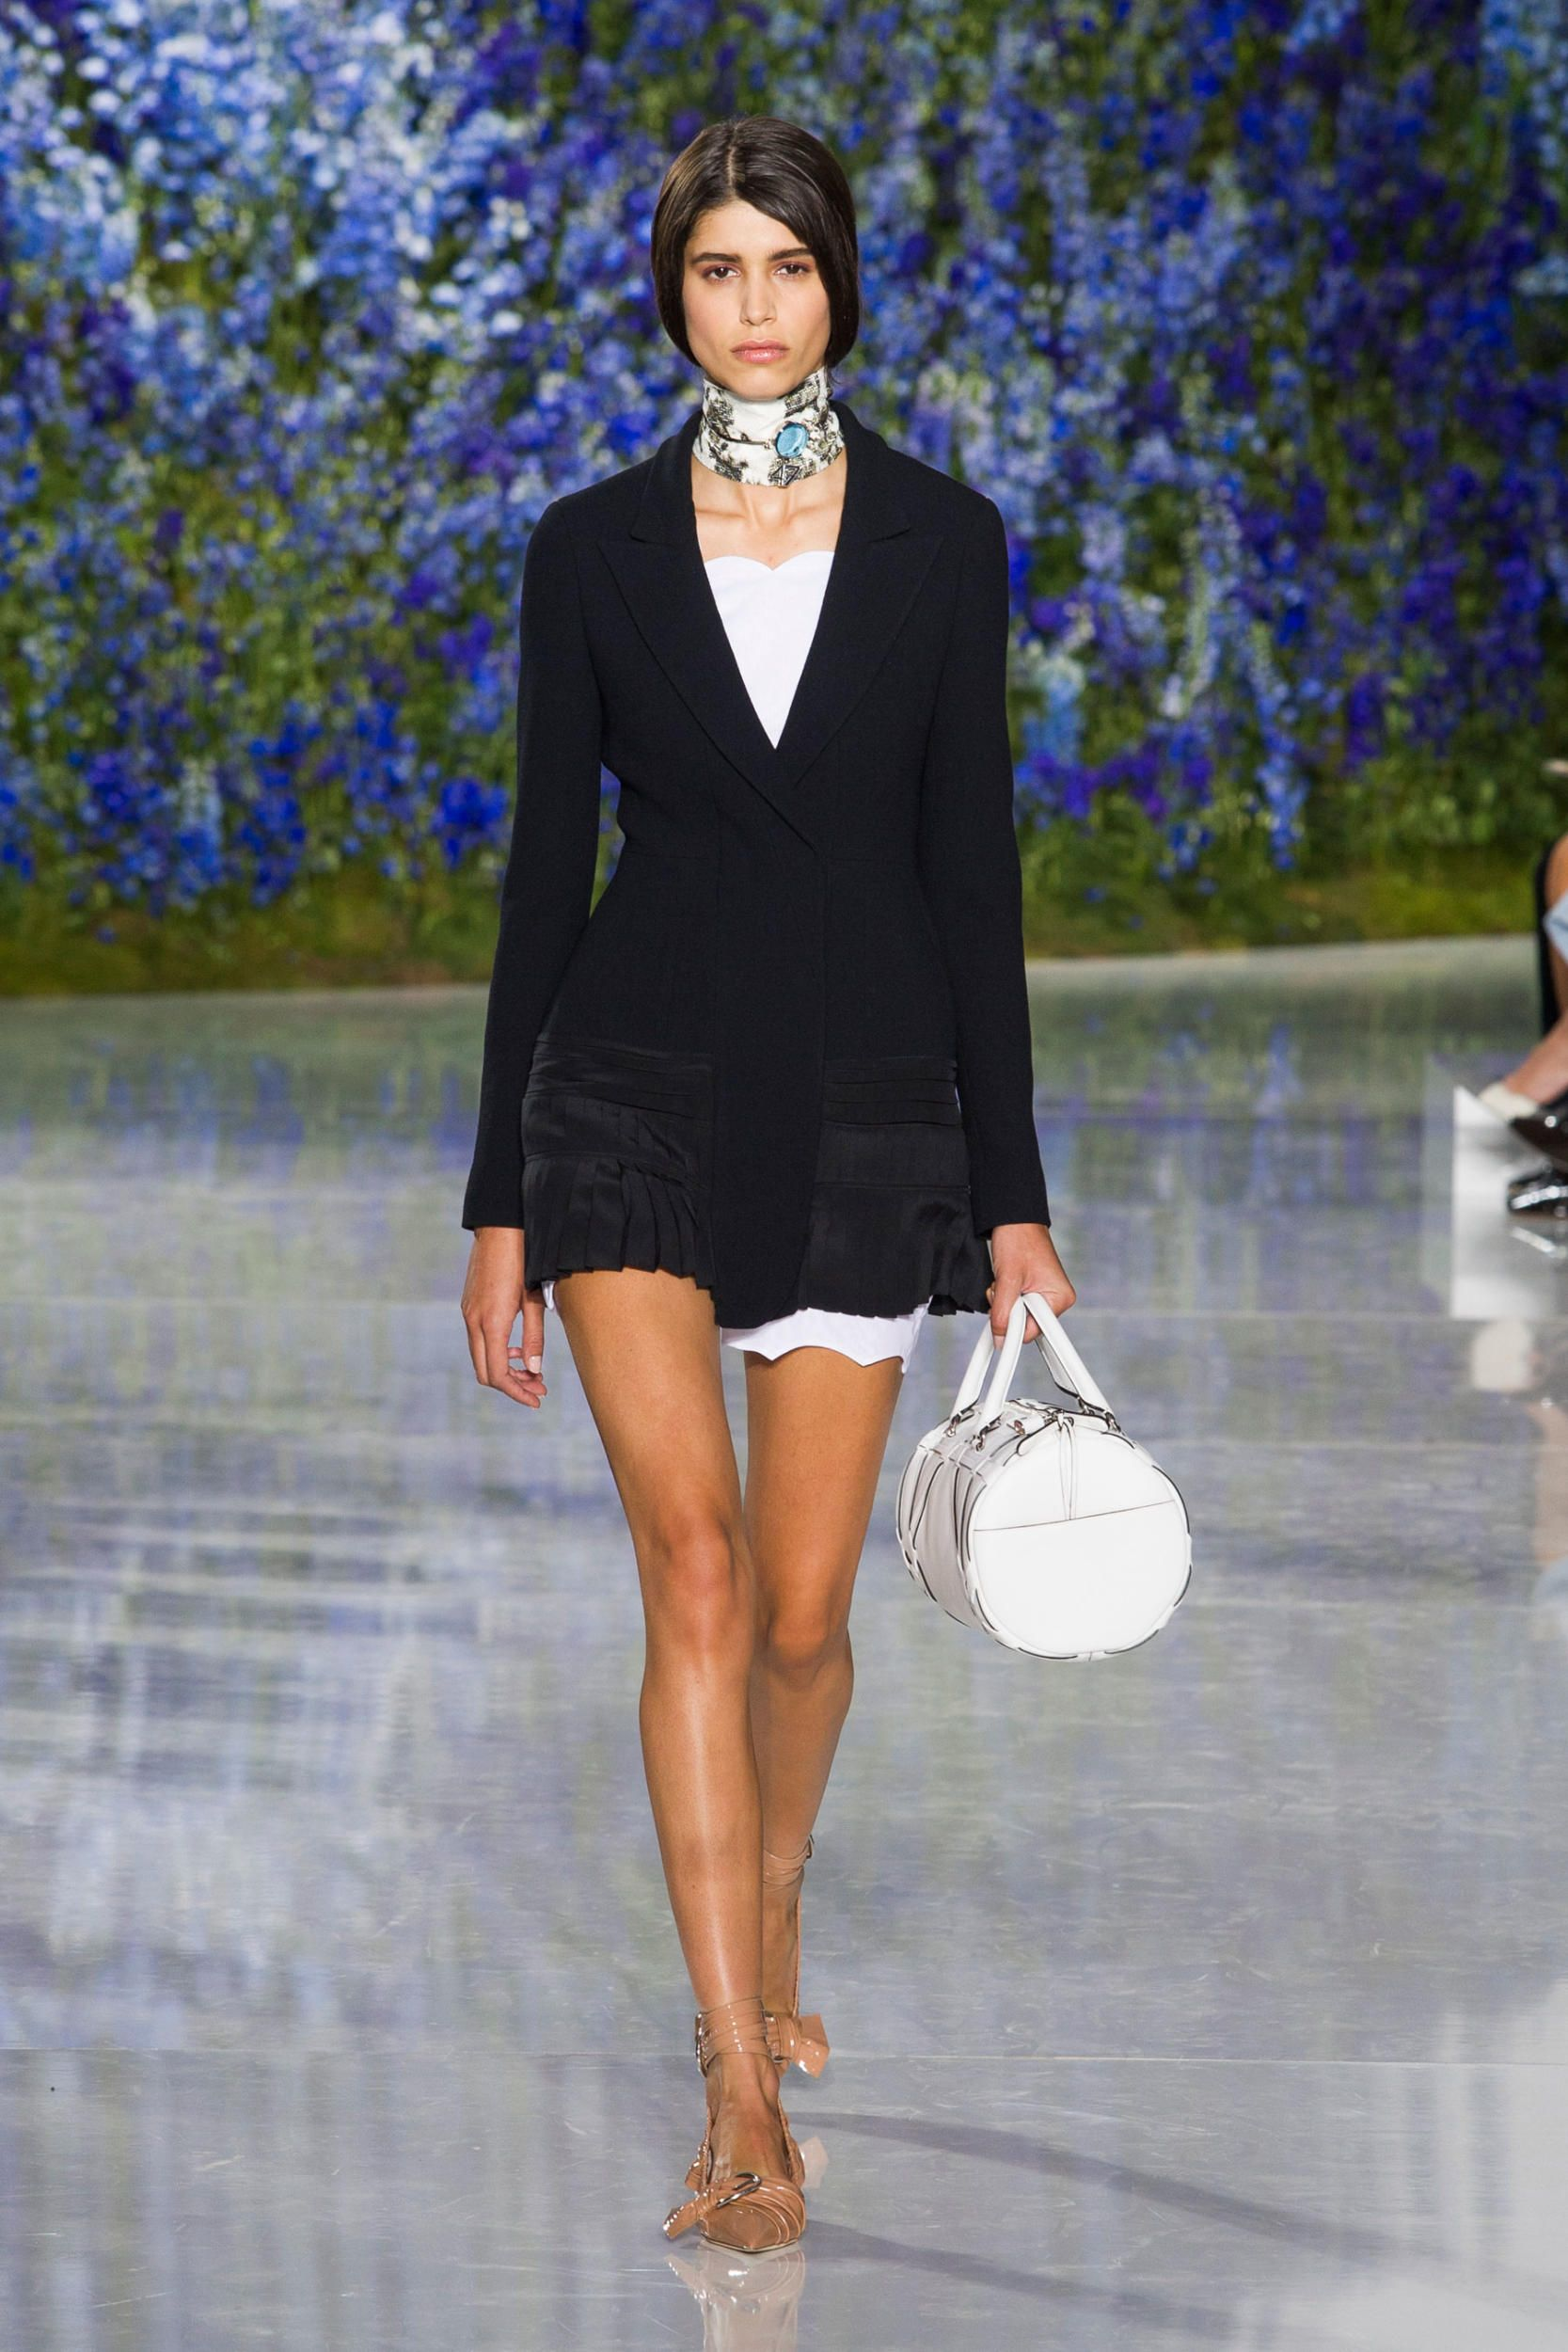 Dior Breathes Light and Air Into its Spring 2016 Collection - Fashionista